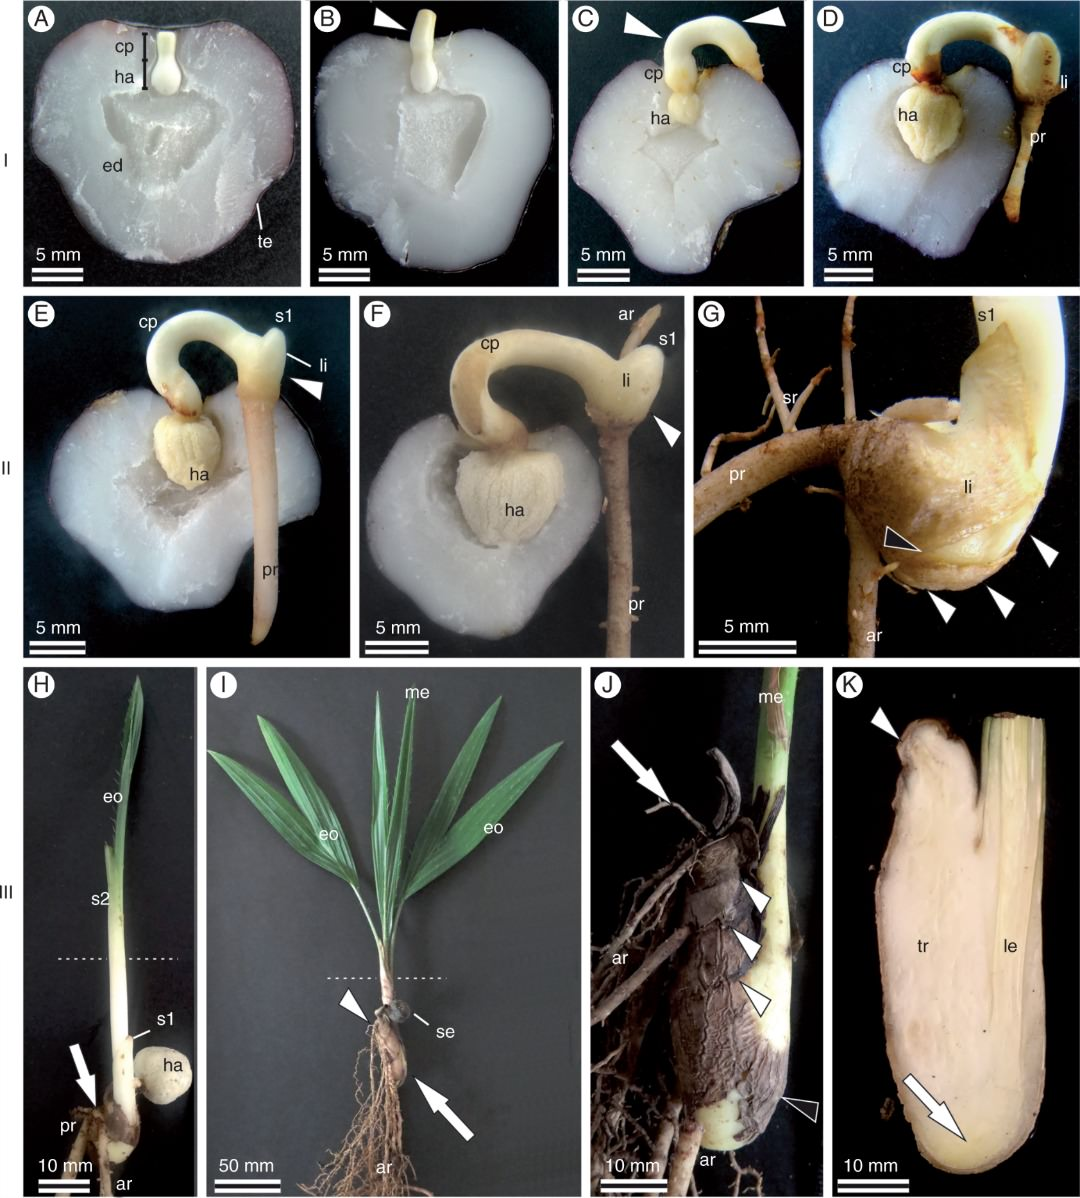 Seeds and seedlings of A. aculeata, indicating (on the left) the development phases of the saxophone stem